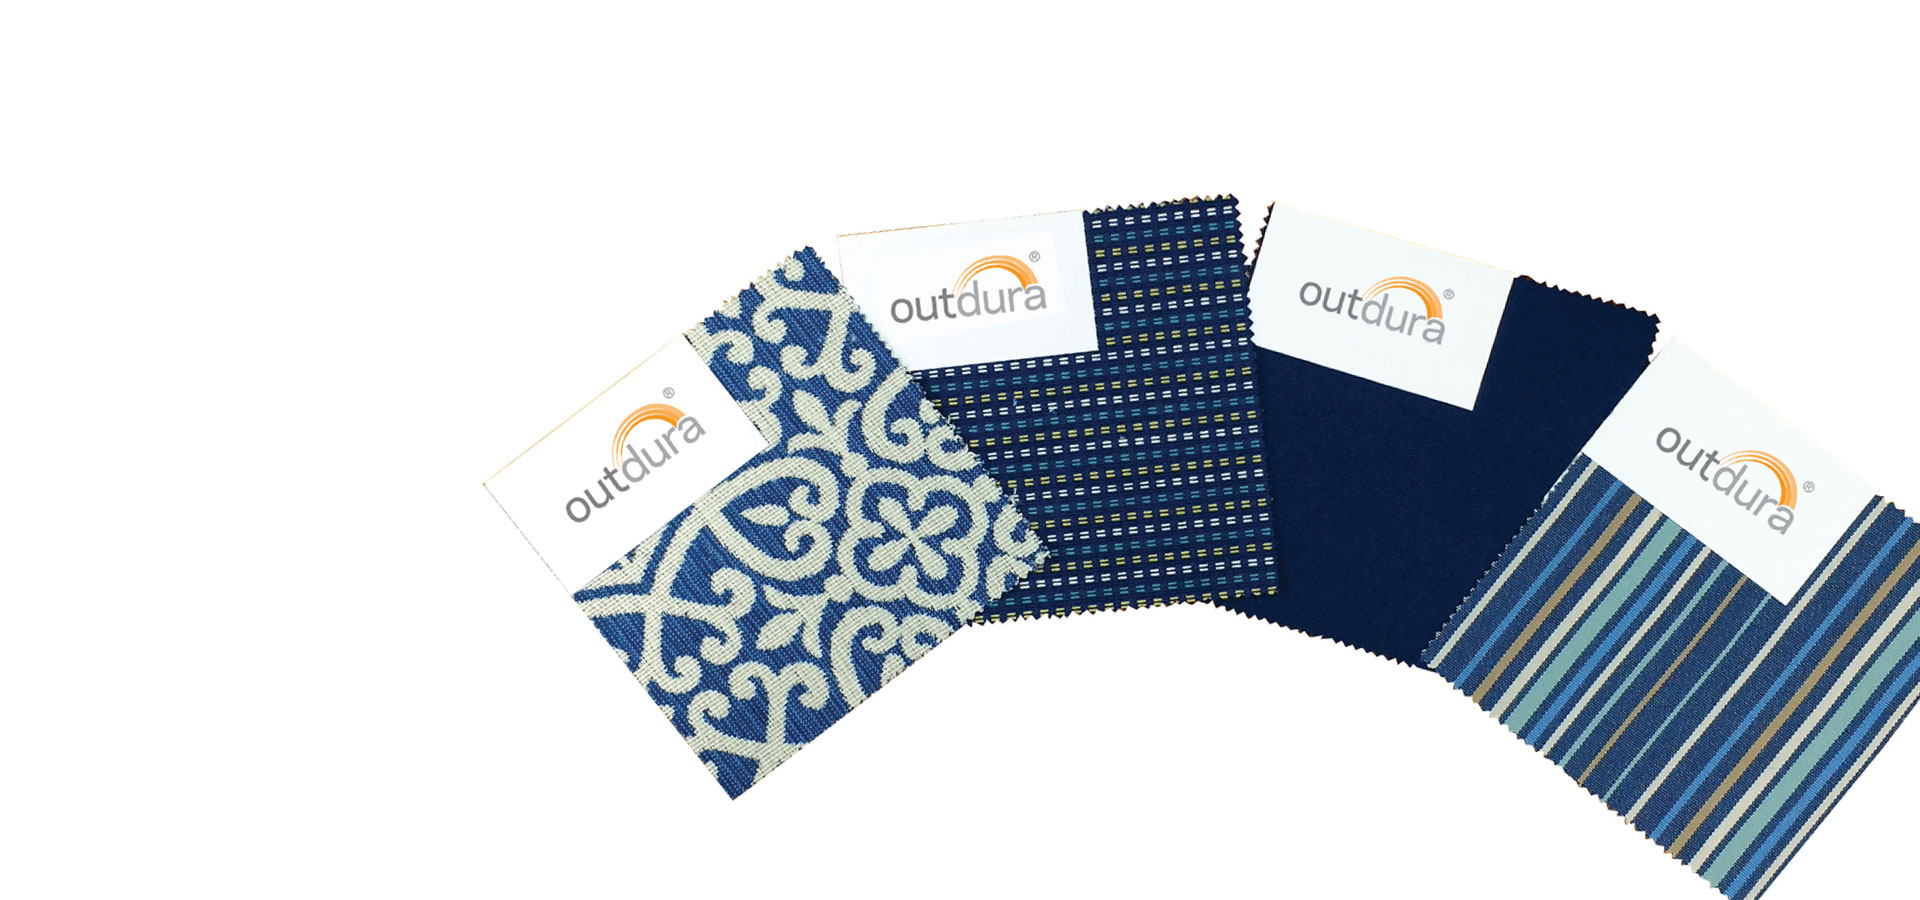 Outdura's fabrics are superior in quality, hand and performance. See for yourself - Request a fabric sample.